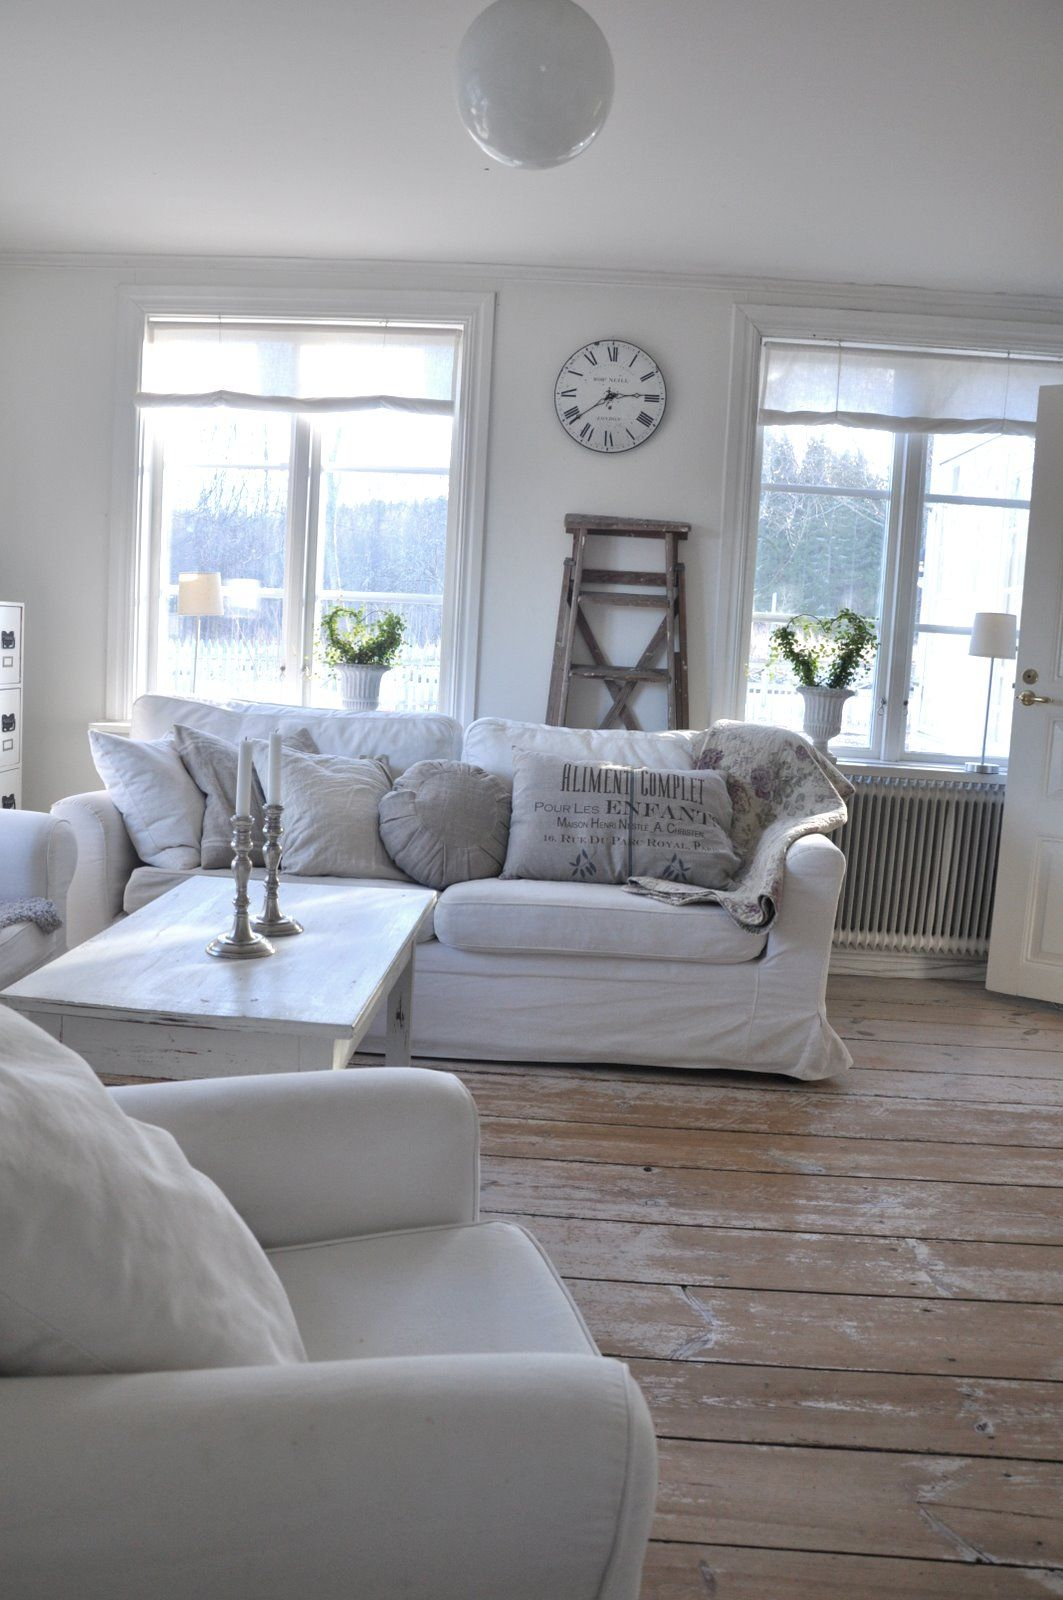 Lovely Simple And Uncluttered Living Room White Slipcovers Make The Difference In This